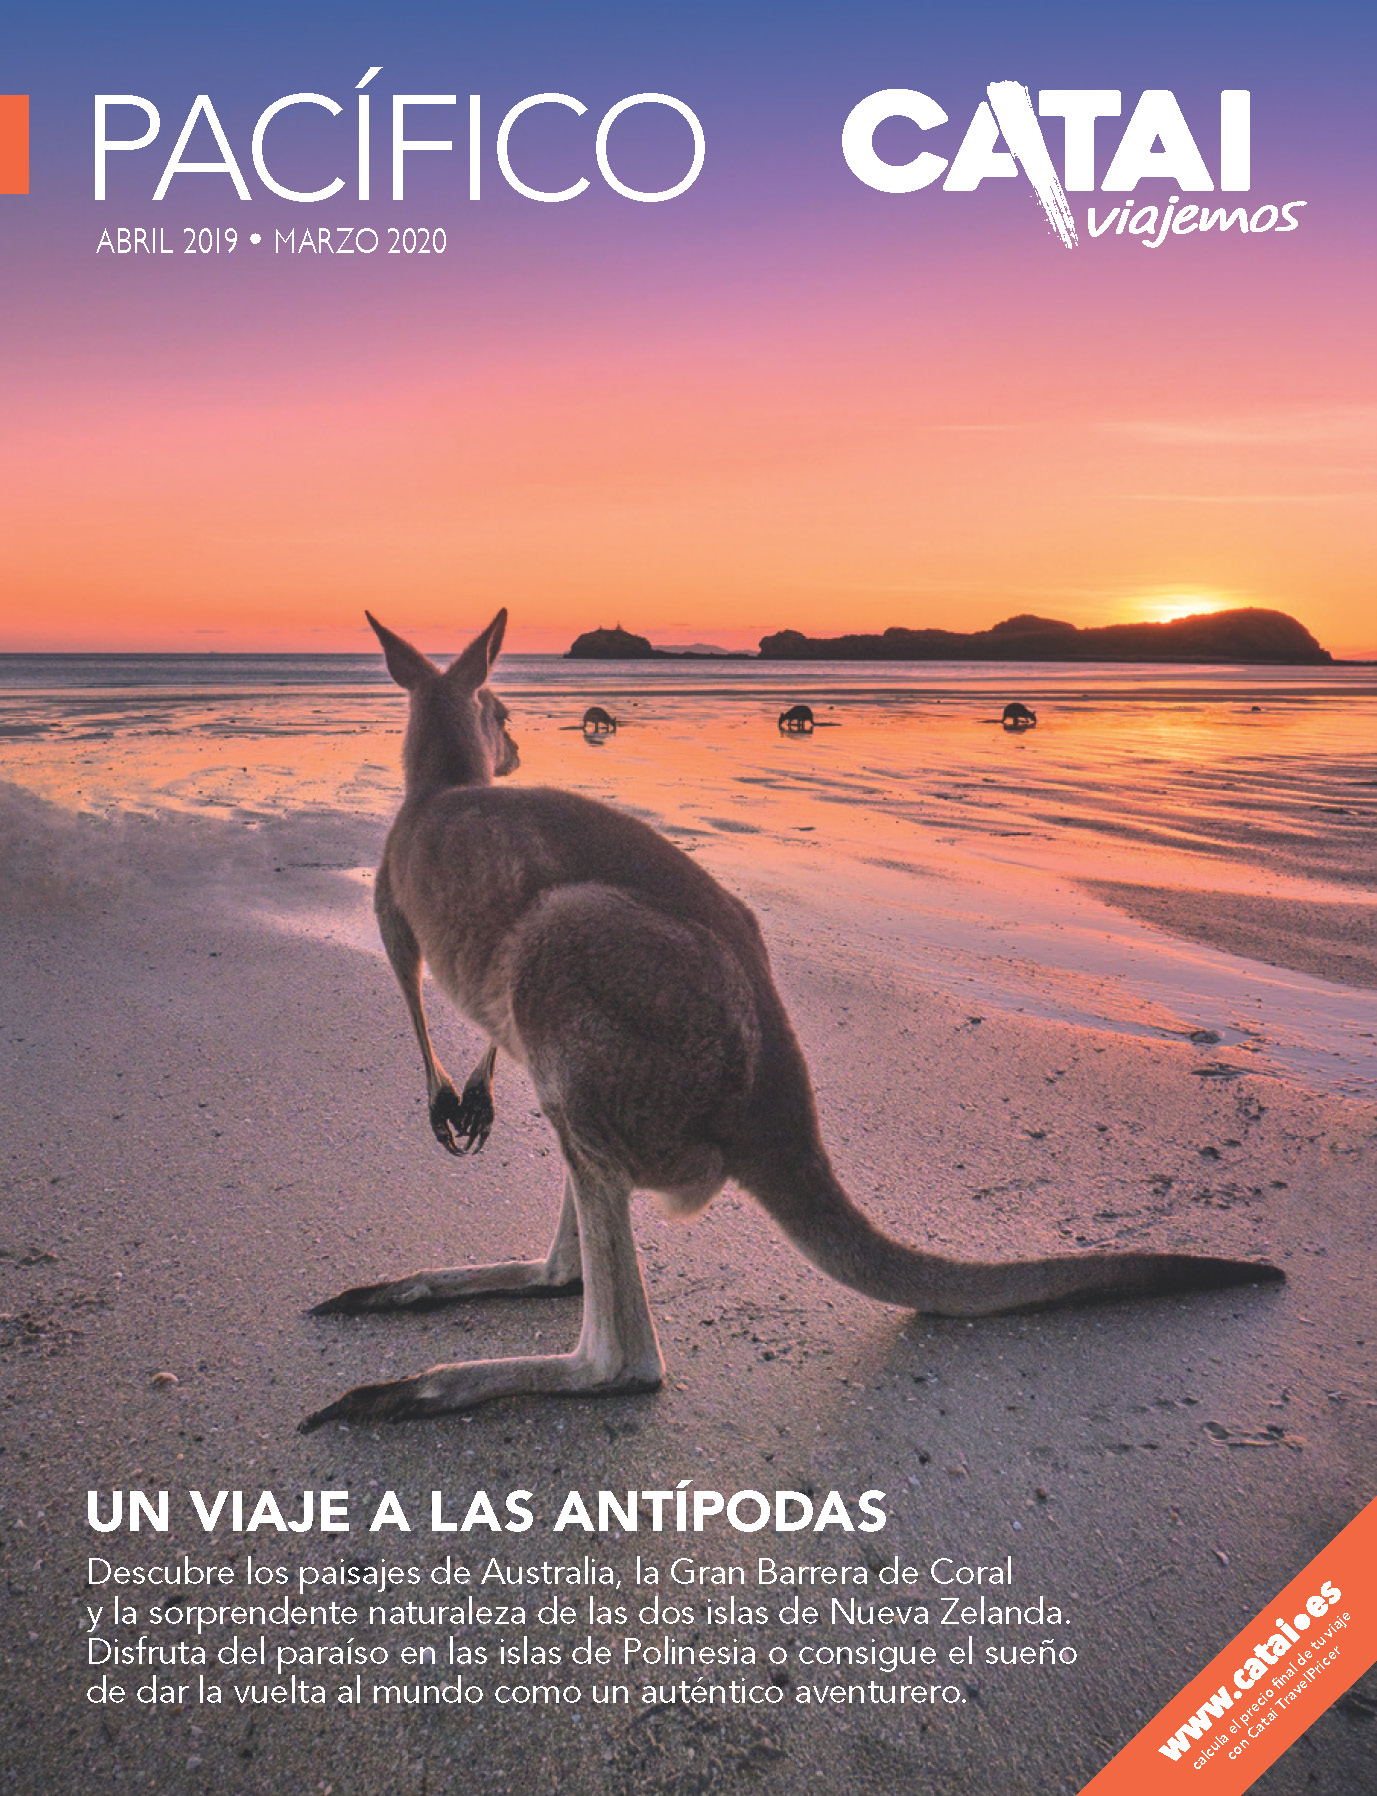 Catalogo Catai Pacifico 2019